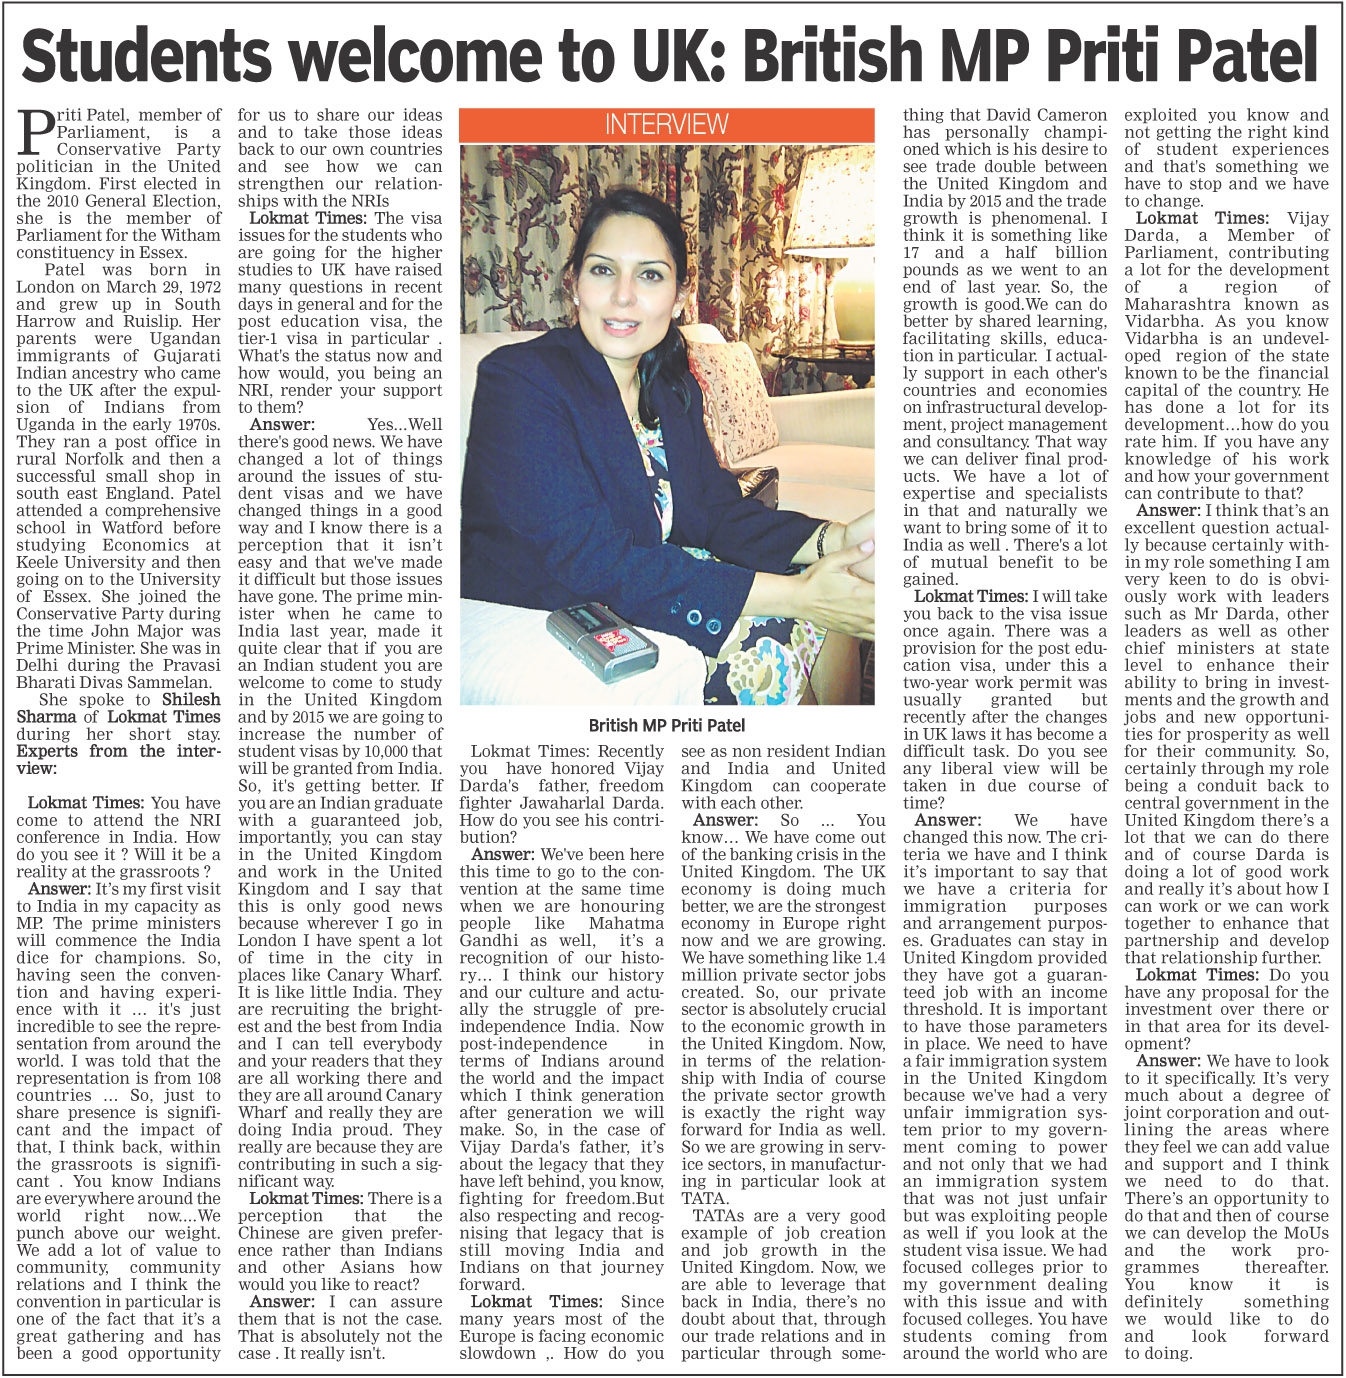 Students welcome to UK: British MP Priti Patel